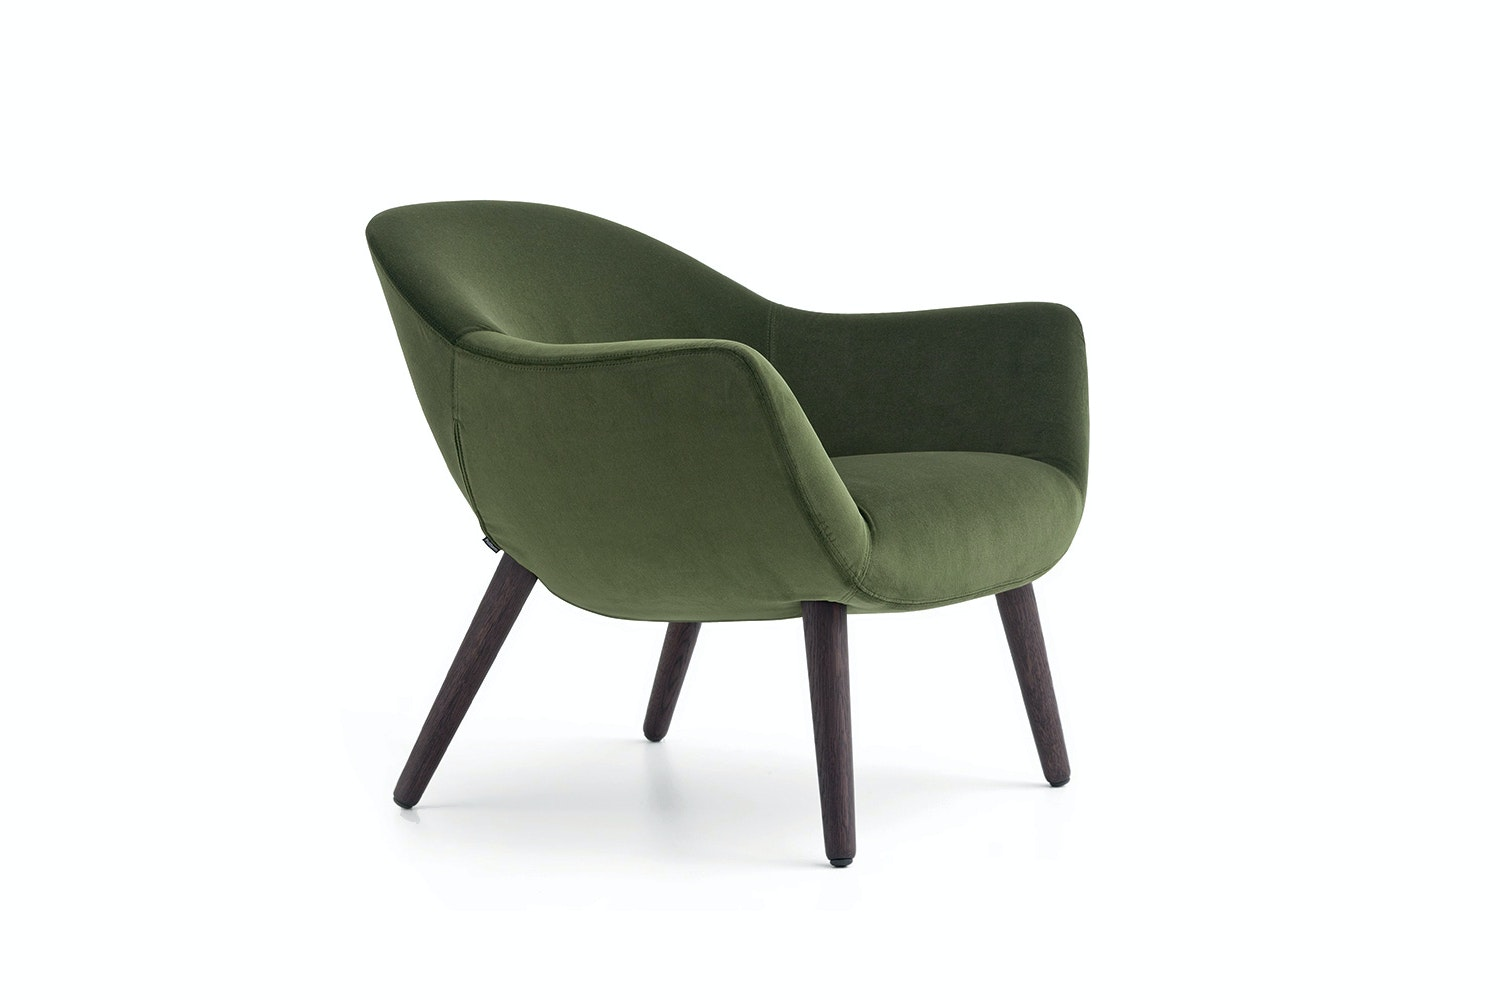 Mad Chair Armchair by Marcel Wanders for Poliform